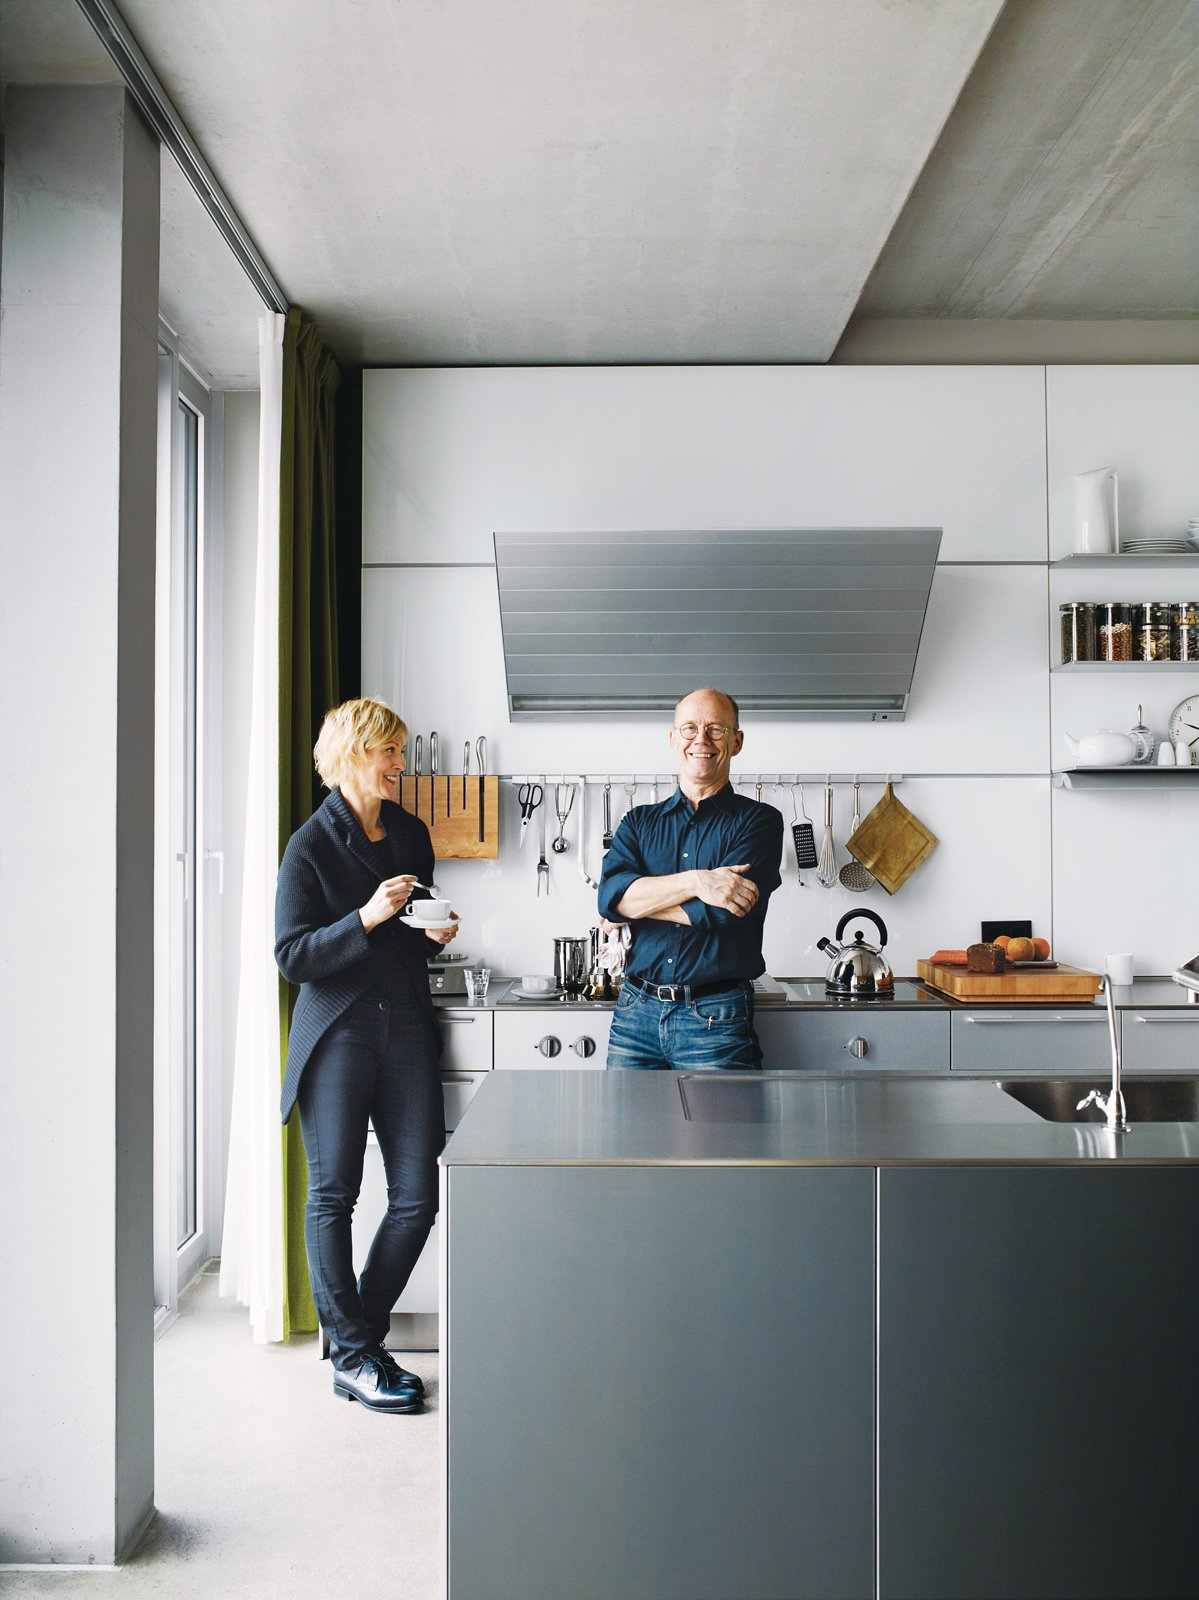 Spiekermann and Dulkinys agree that their house—the first they've built from the ground up—is definitely different. Tagged: Kitchen and Metal Counter.  Graphic Designers We Love by Aaron Britt from A Rational Approach